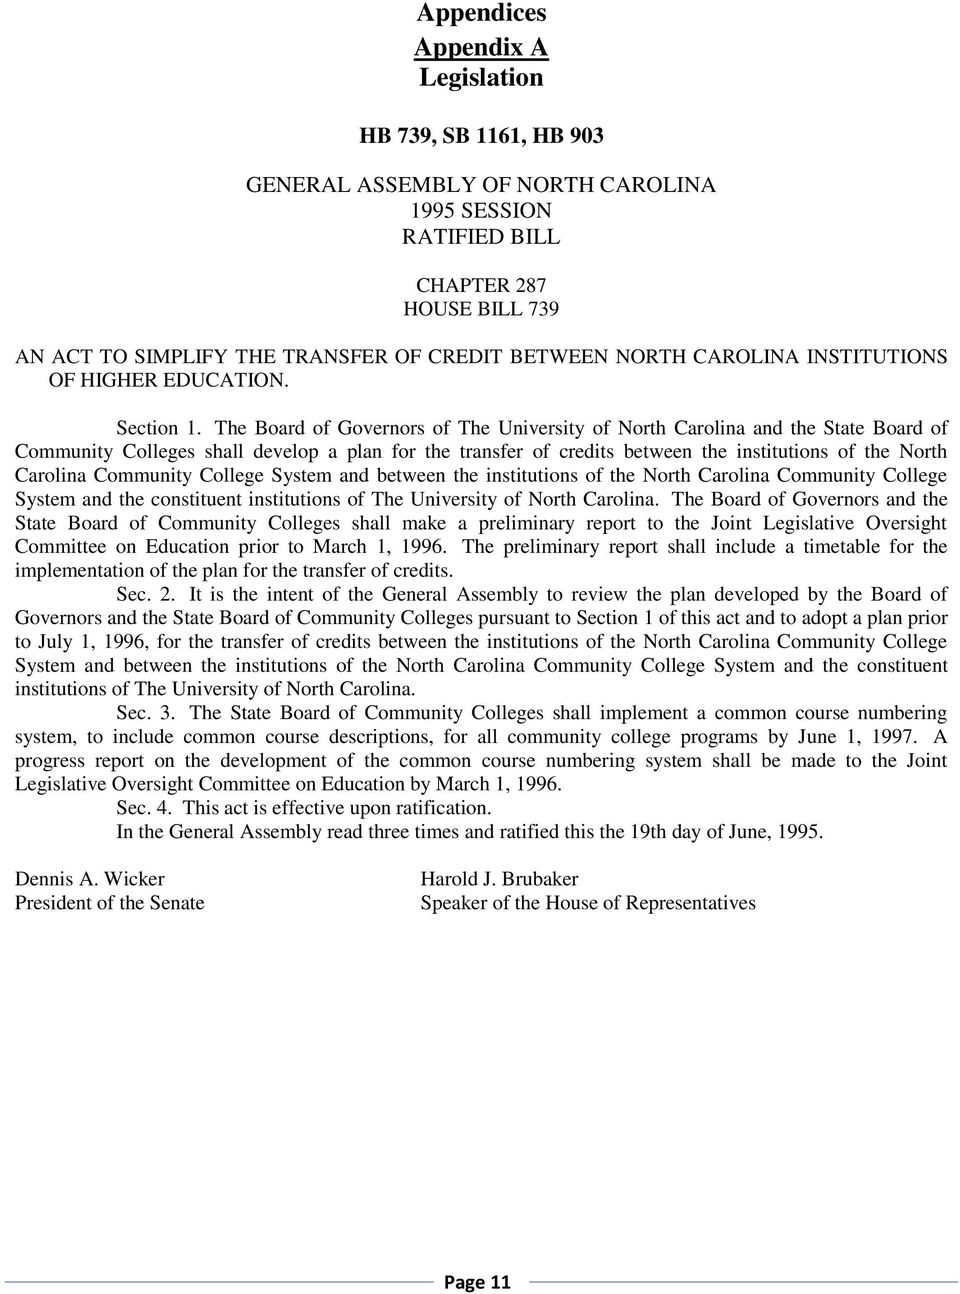 The Board of Governors of The University of North Carolina and the State Board of Community Colleges shall develop a plan for the transfer of credits between the institutions of the North Carolina